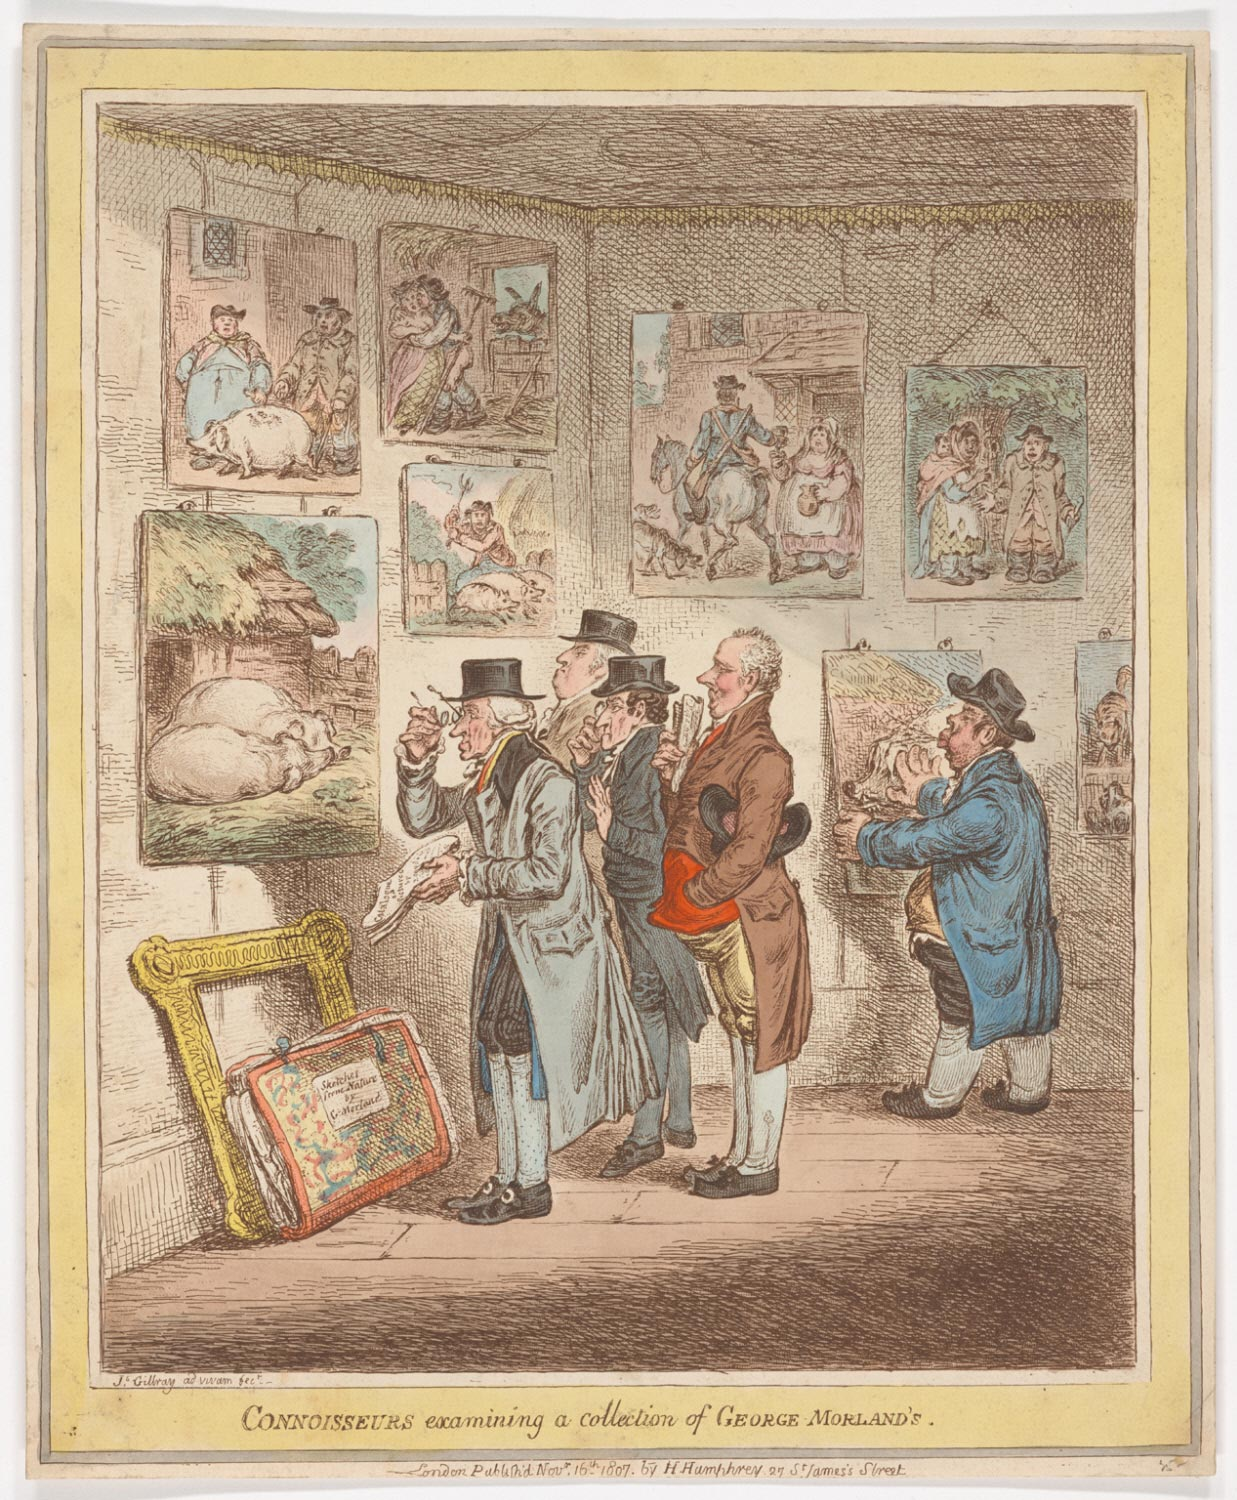 Connoisseurs Examining a Collection of George Morland's